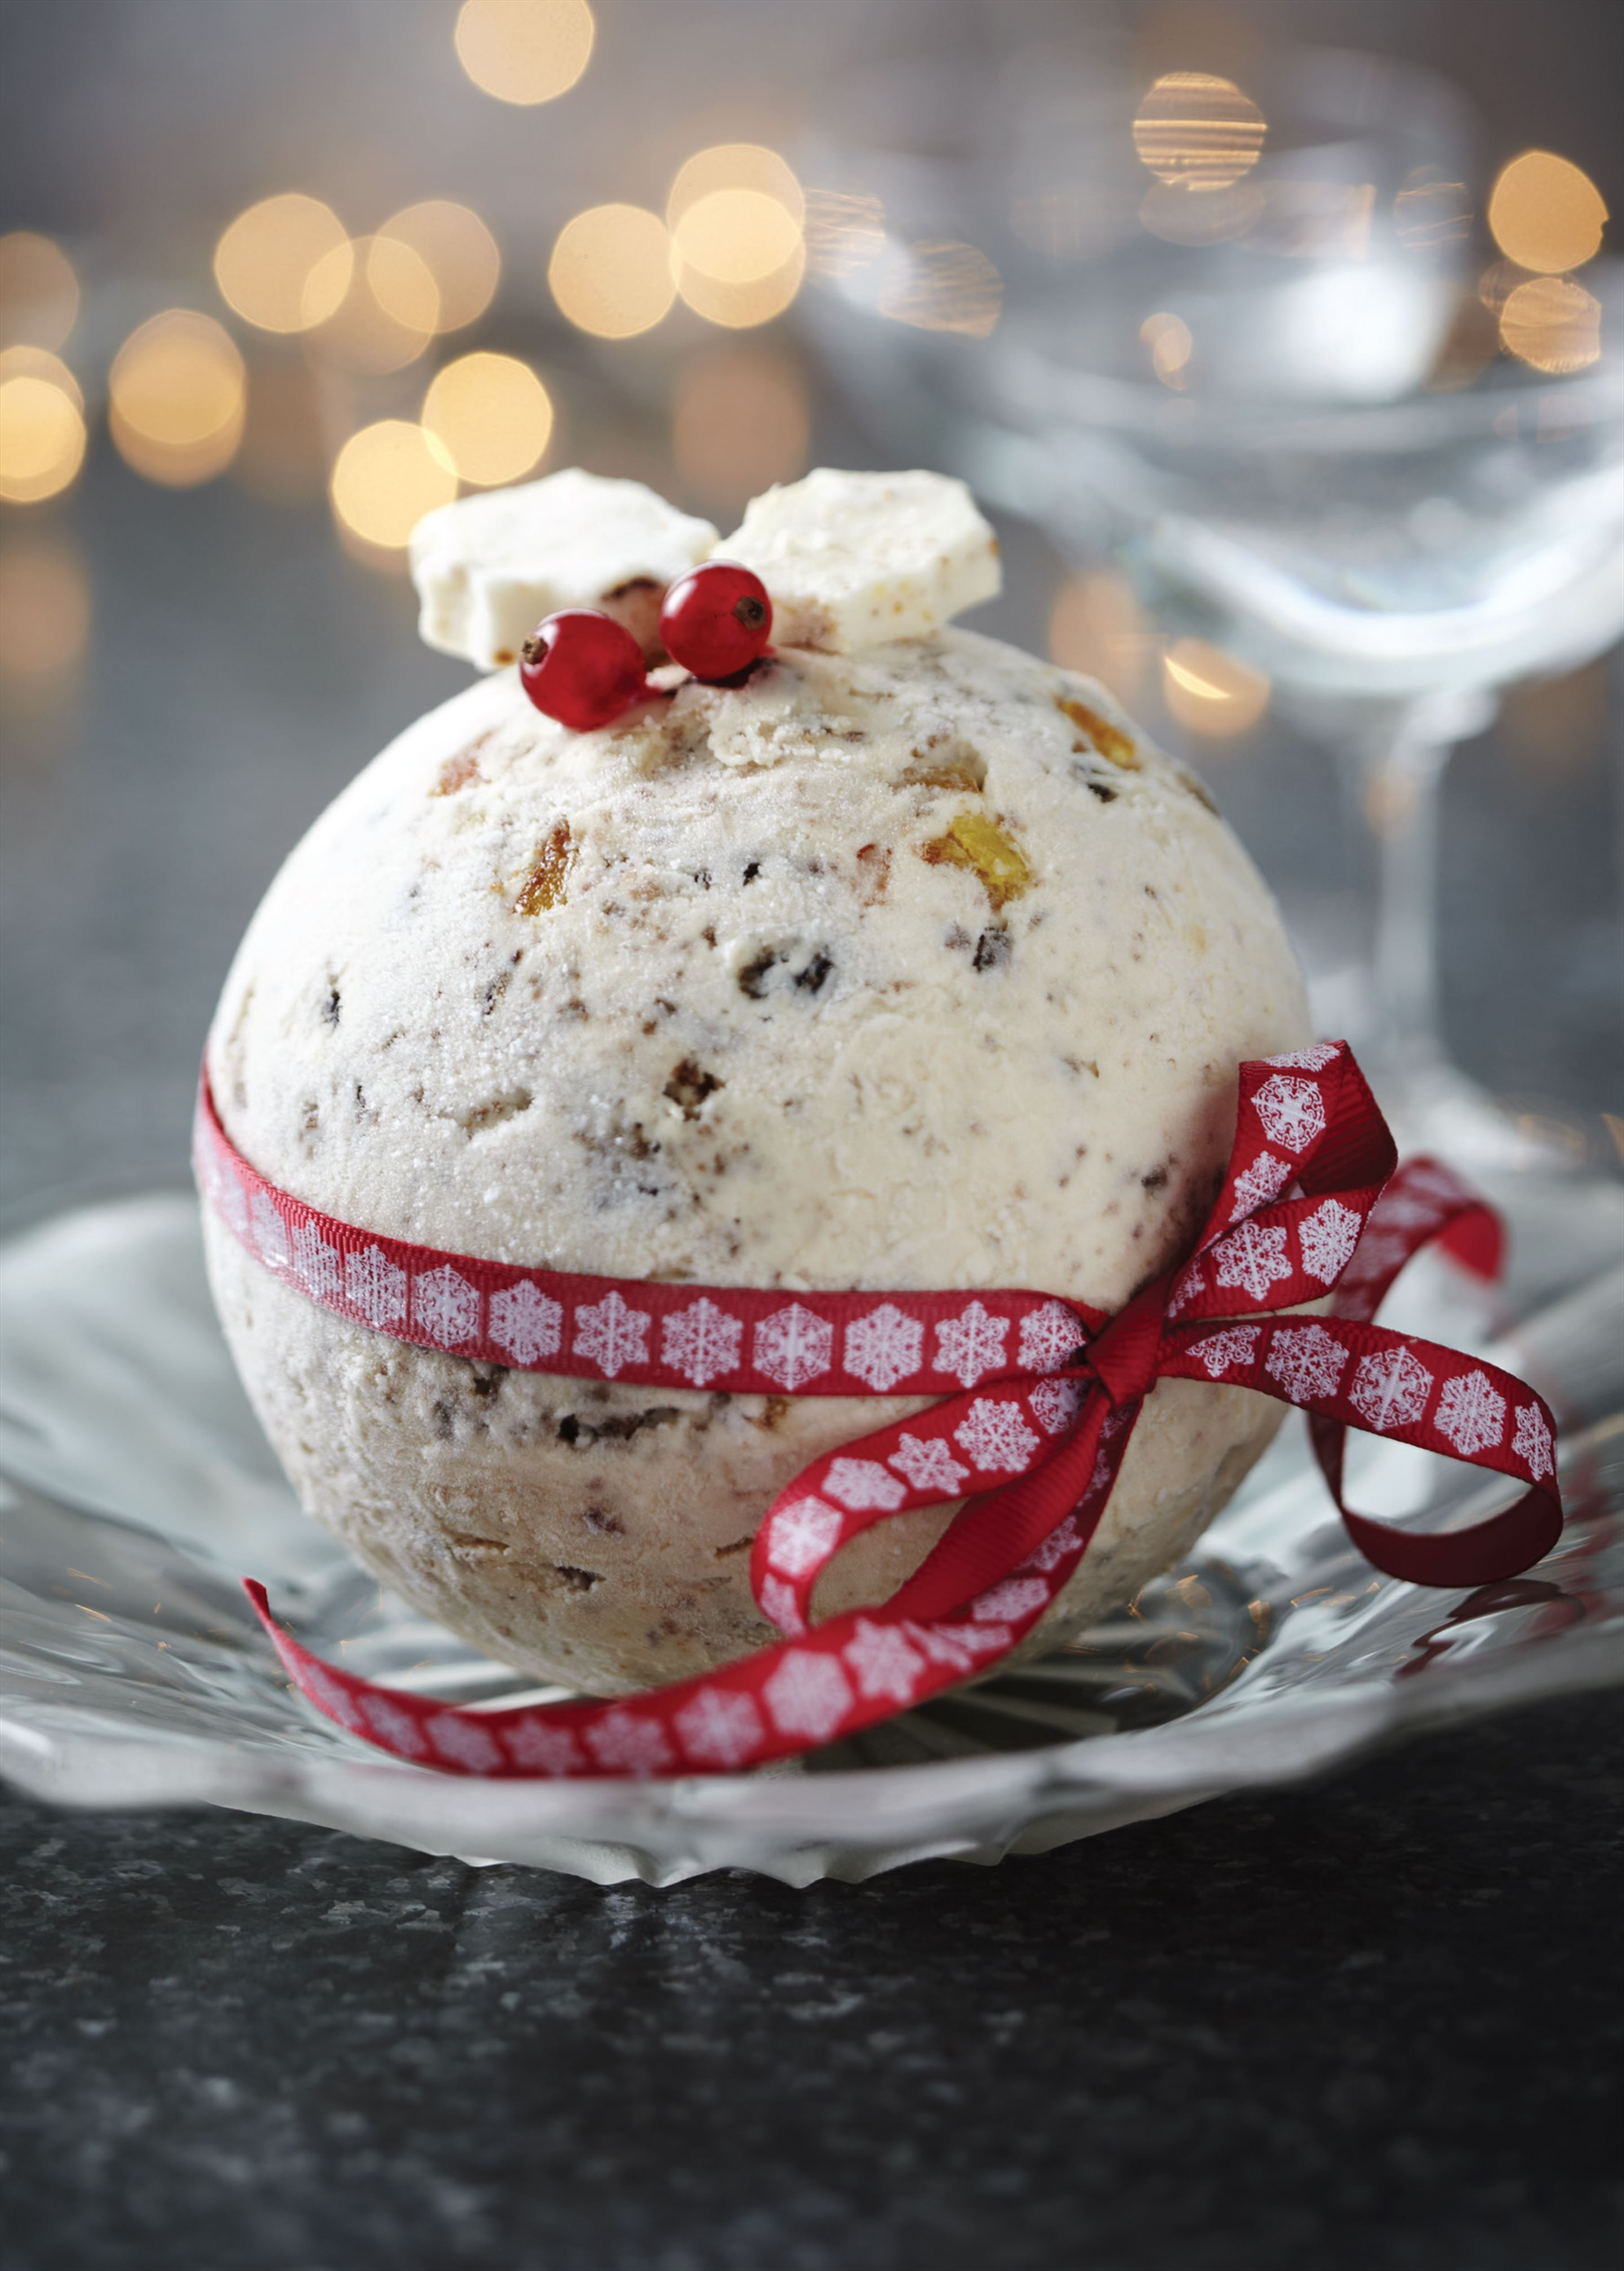 Christmas and marzipan ice cream